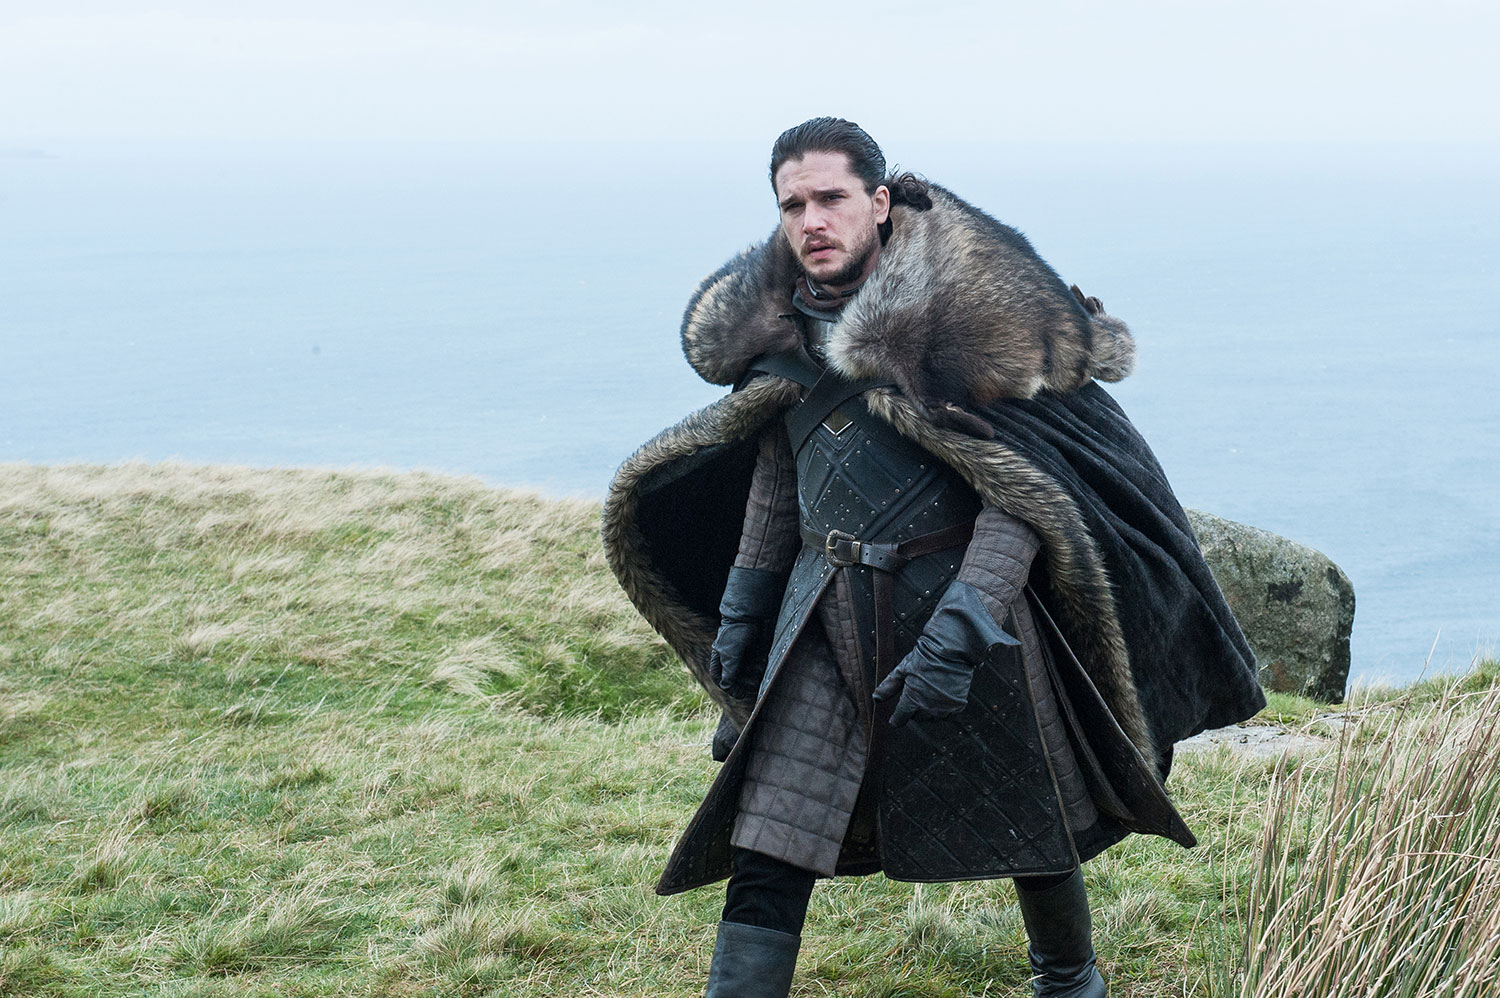 IKEA Just Made It Way Easier to Make Your Own Jon Snow Cape